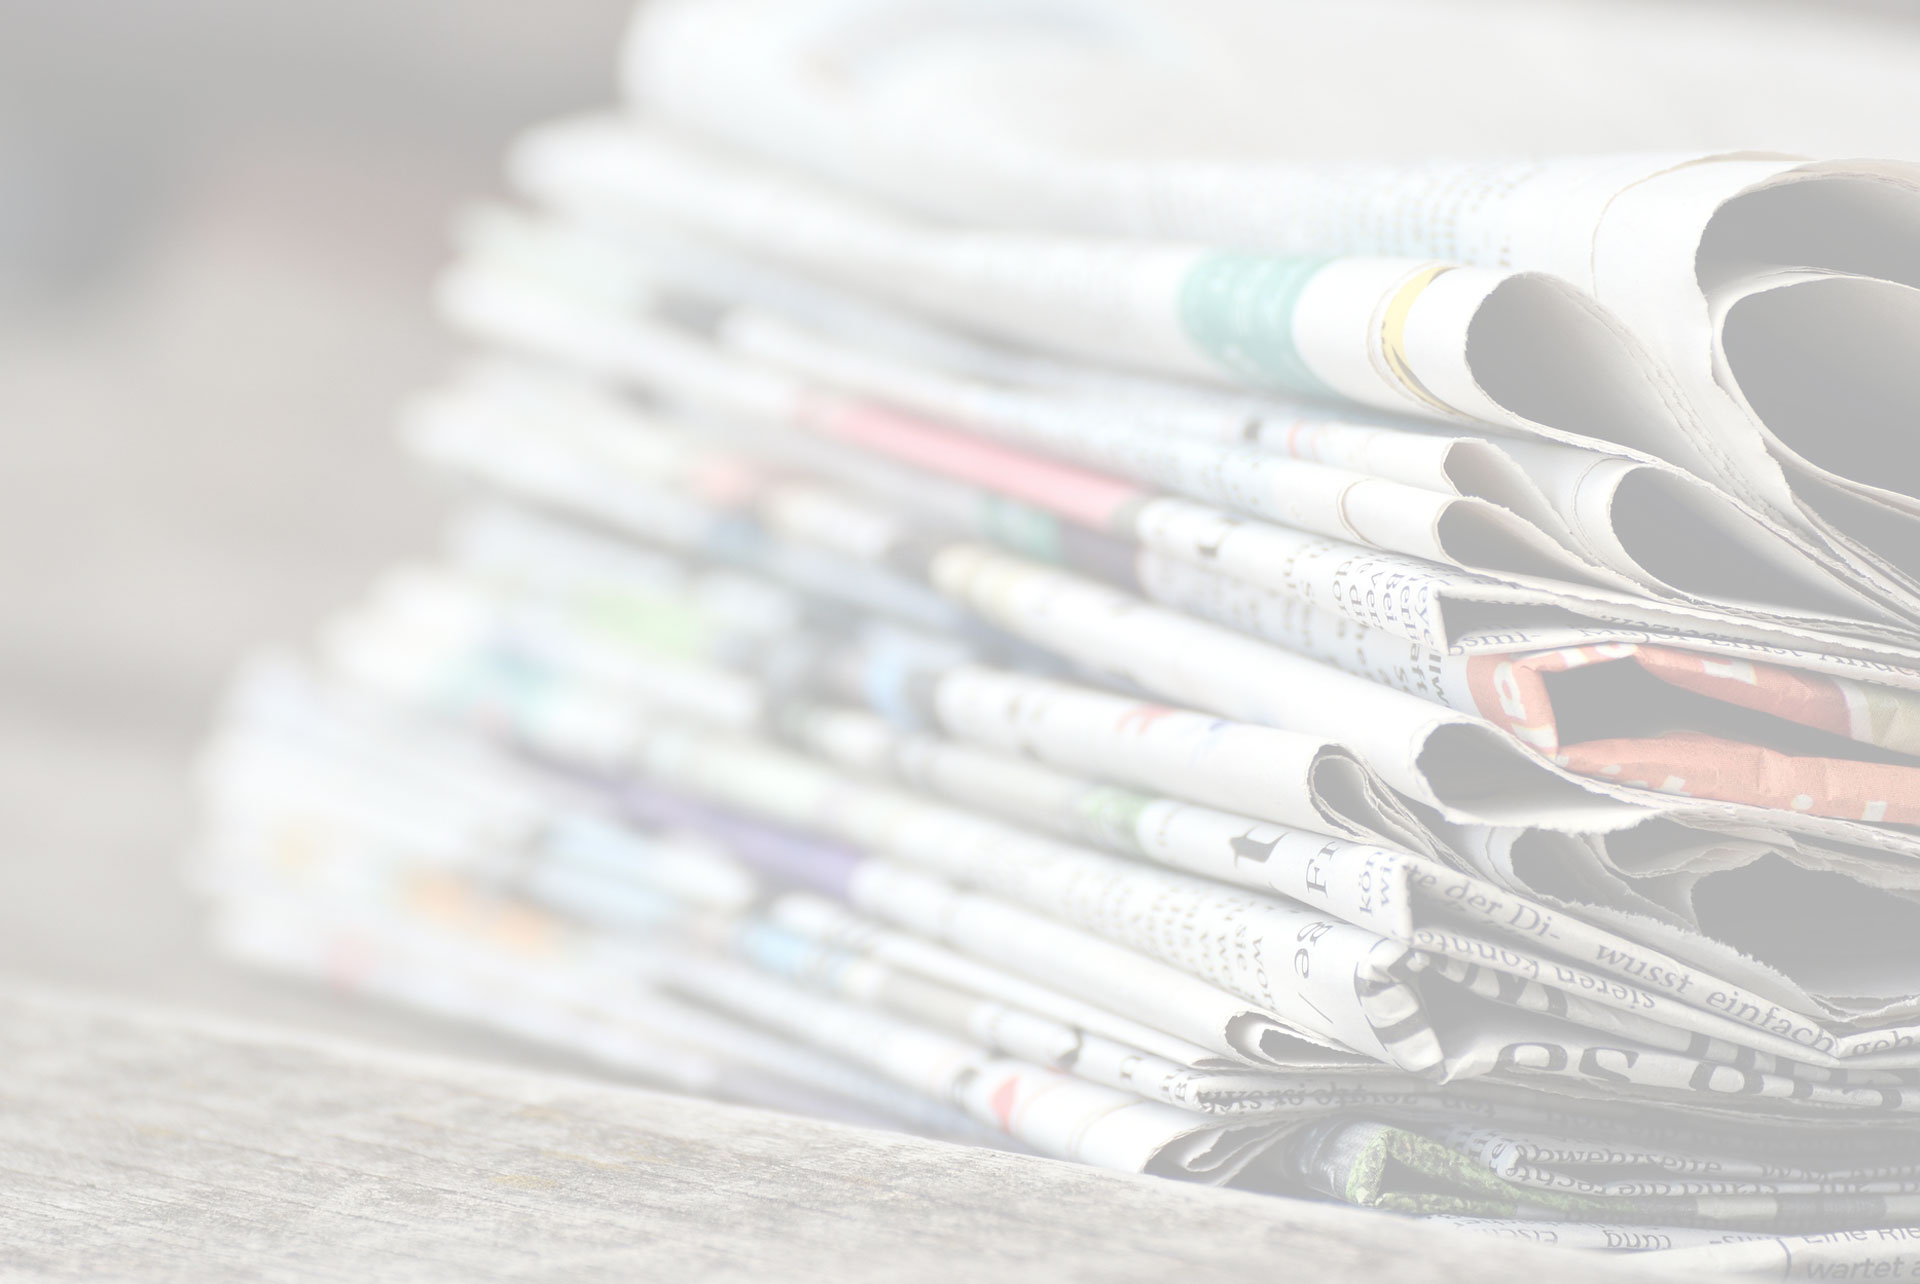 Germania, strage razzista ad Hanau (VIDEO). Il killer, 'Anni